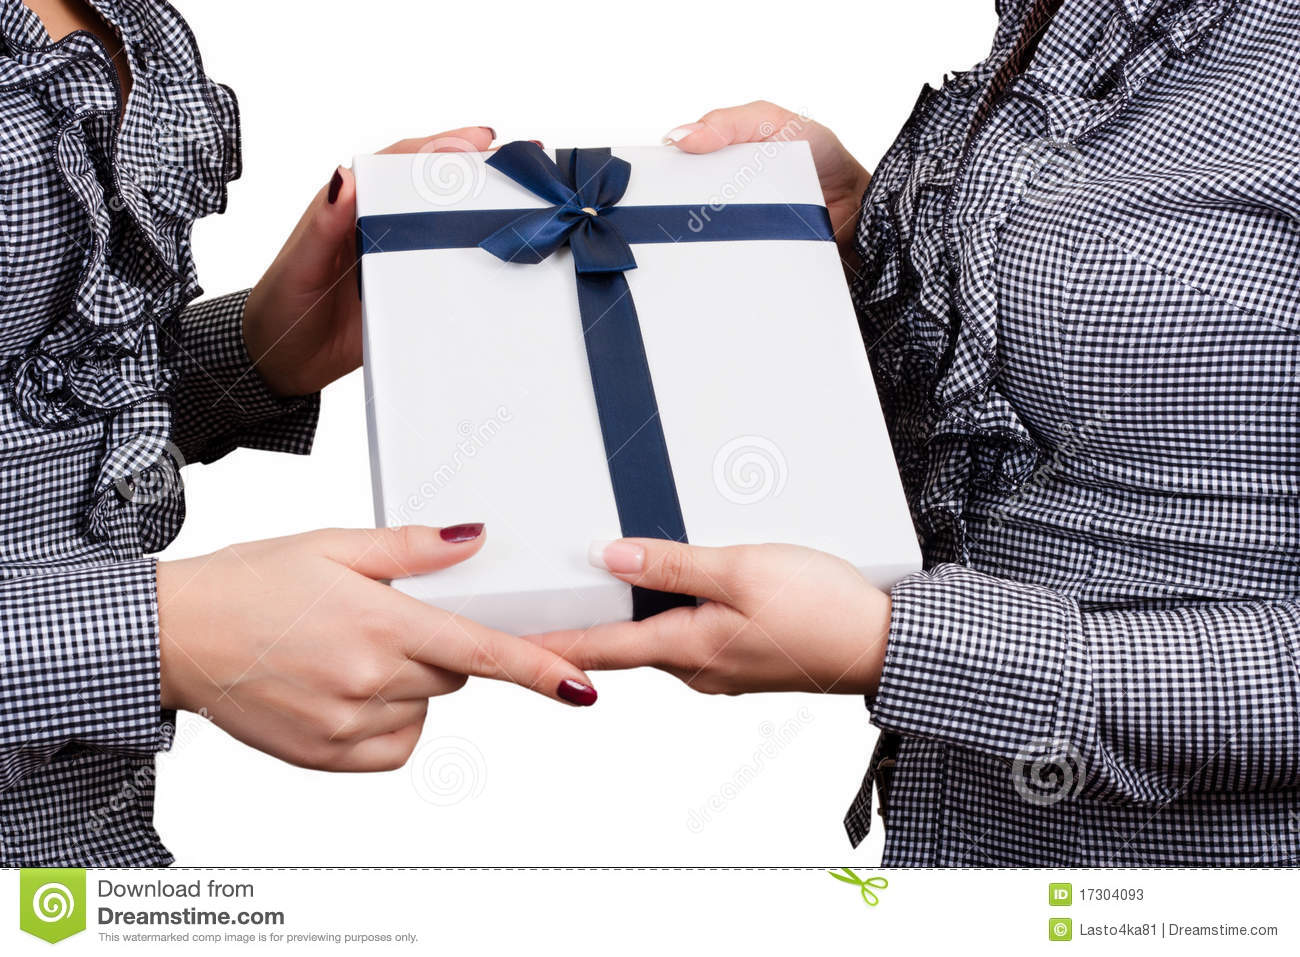 how to send paypal as gift